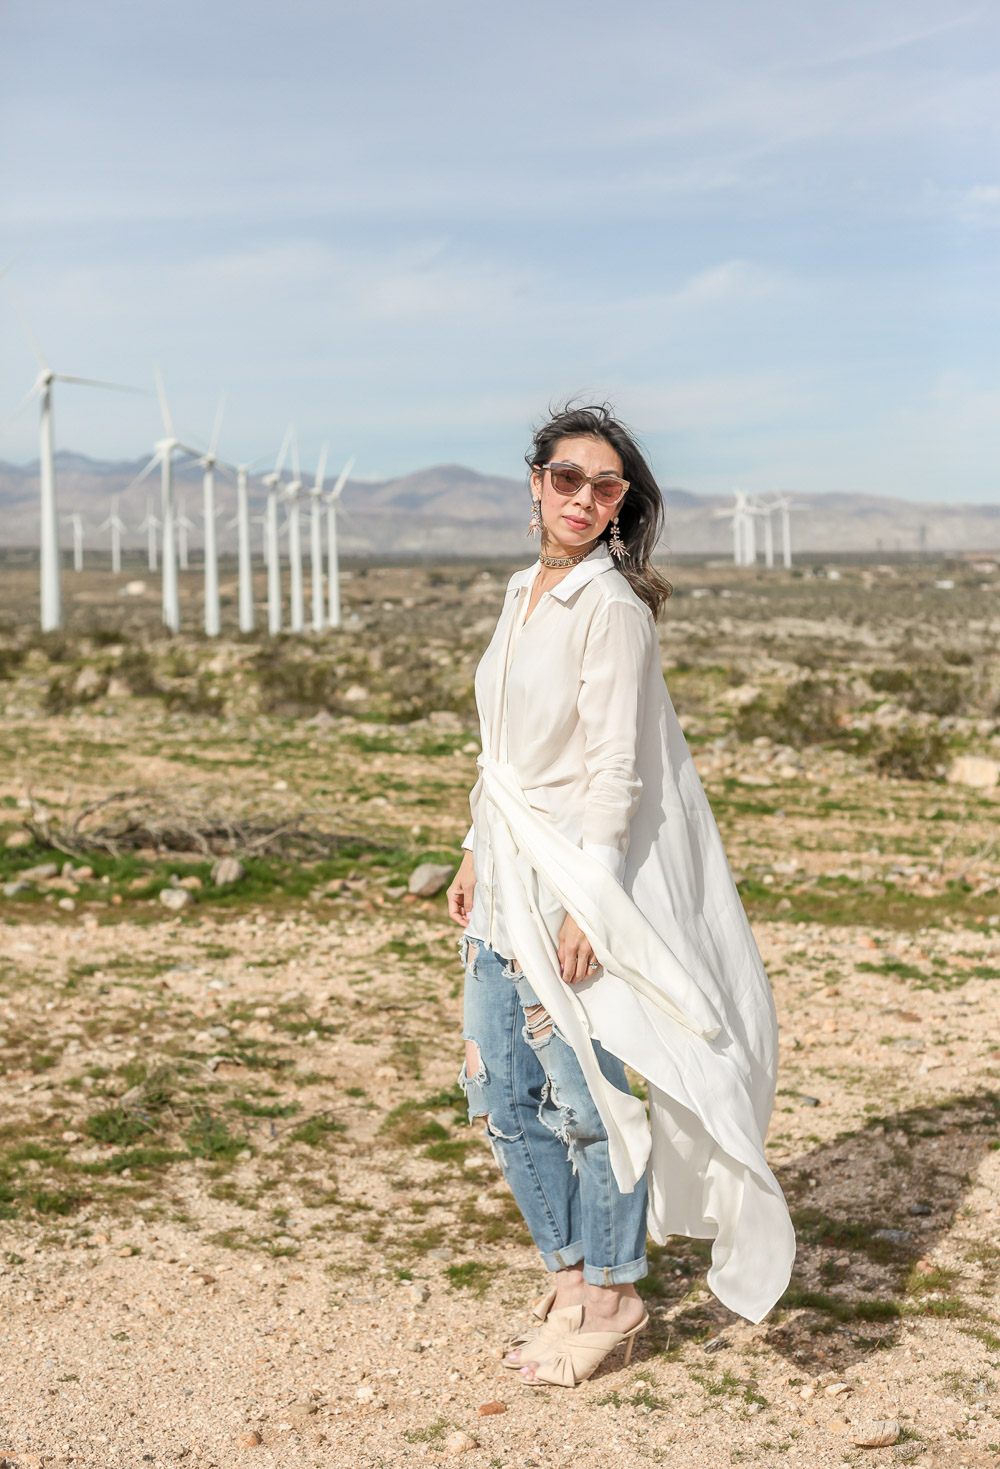 palmer harding waterfall shirt with ripped boyfriend jeans and charlotte olympia ilona bow mules at palms springs wind farm